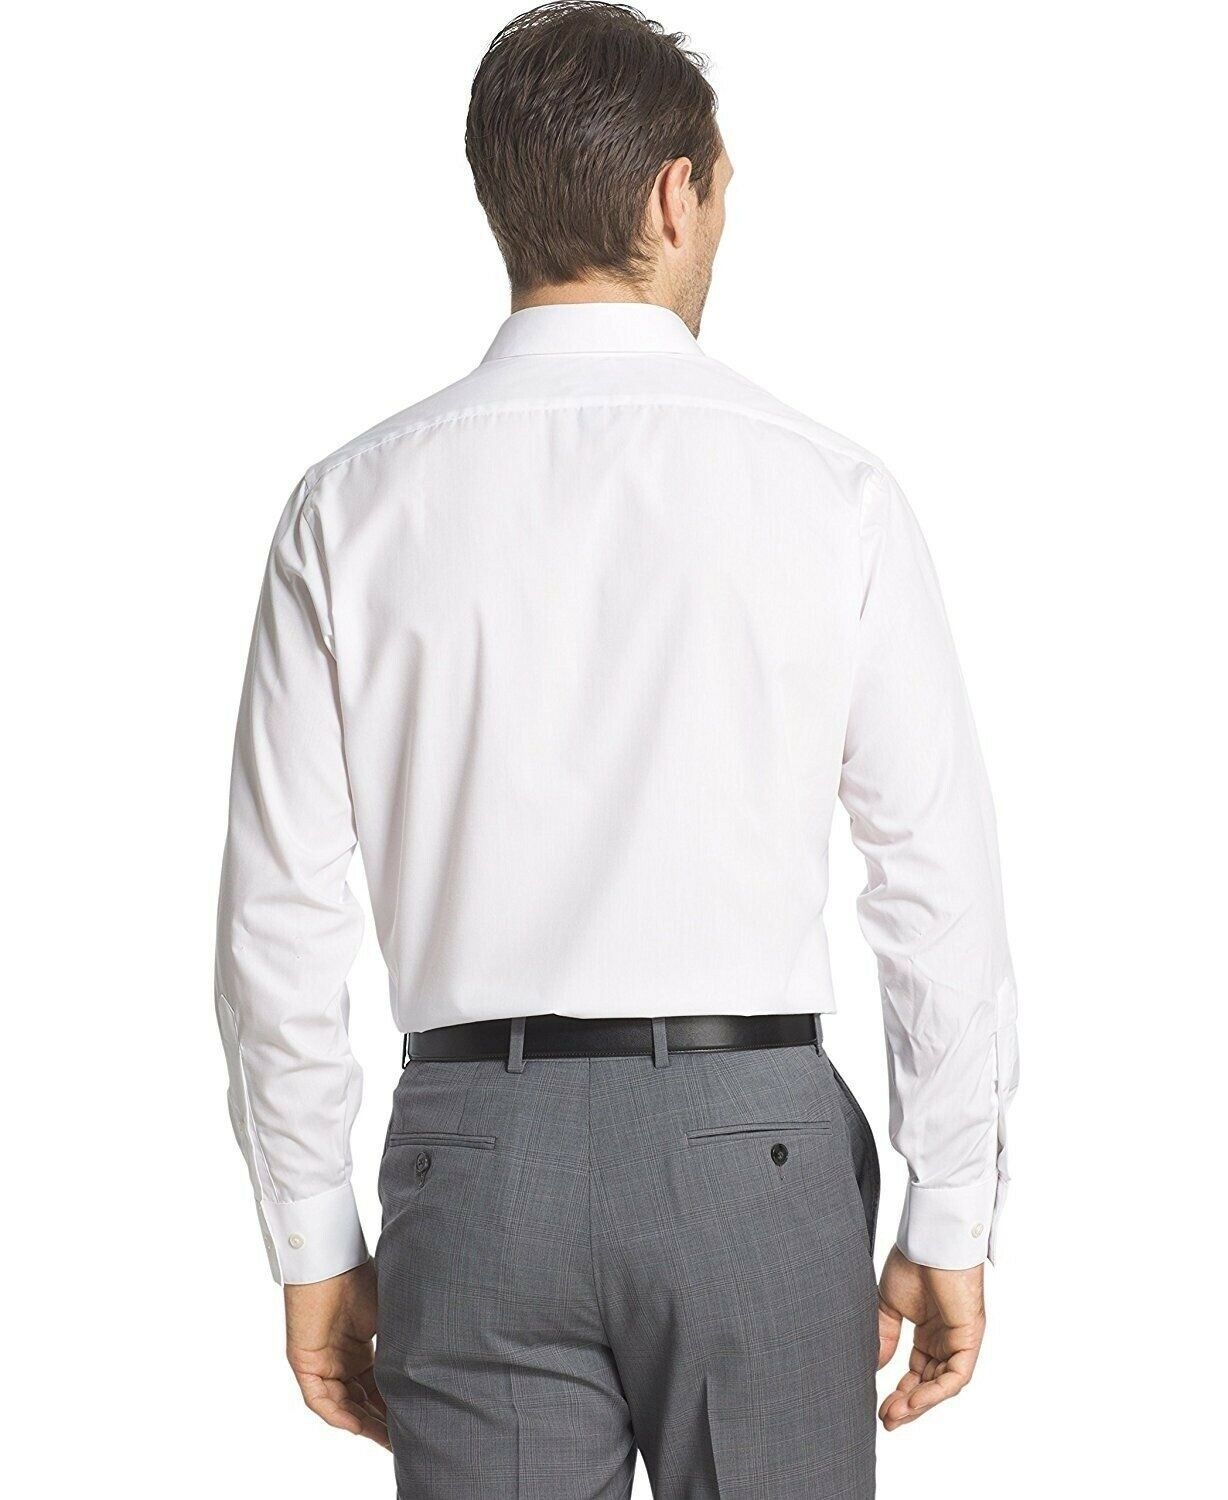 BERLIONI-ITALY-MEN-039-S-PRIME-FRENCH-CONVERTIBLE-CUFF-SOLID-DRESS-SHIRT-WHITE thumbnail 52